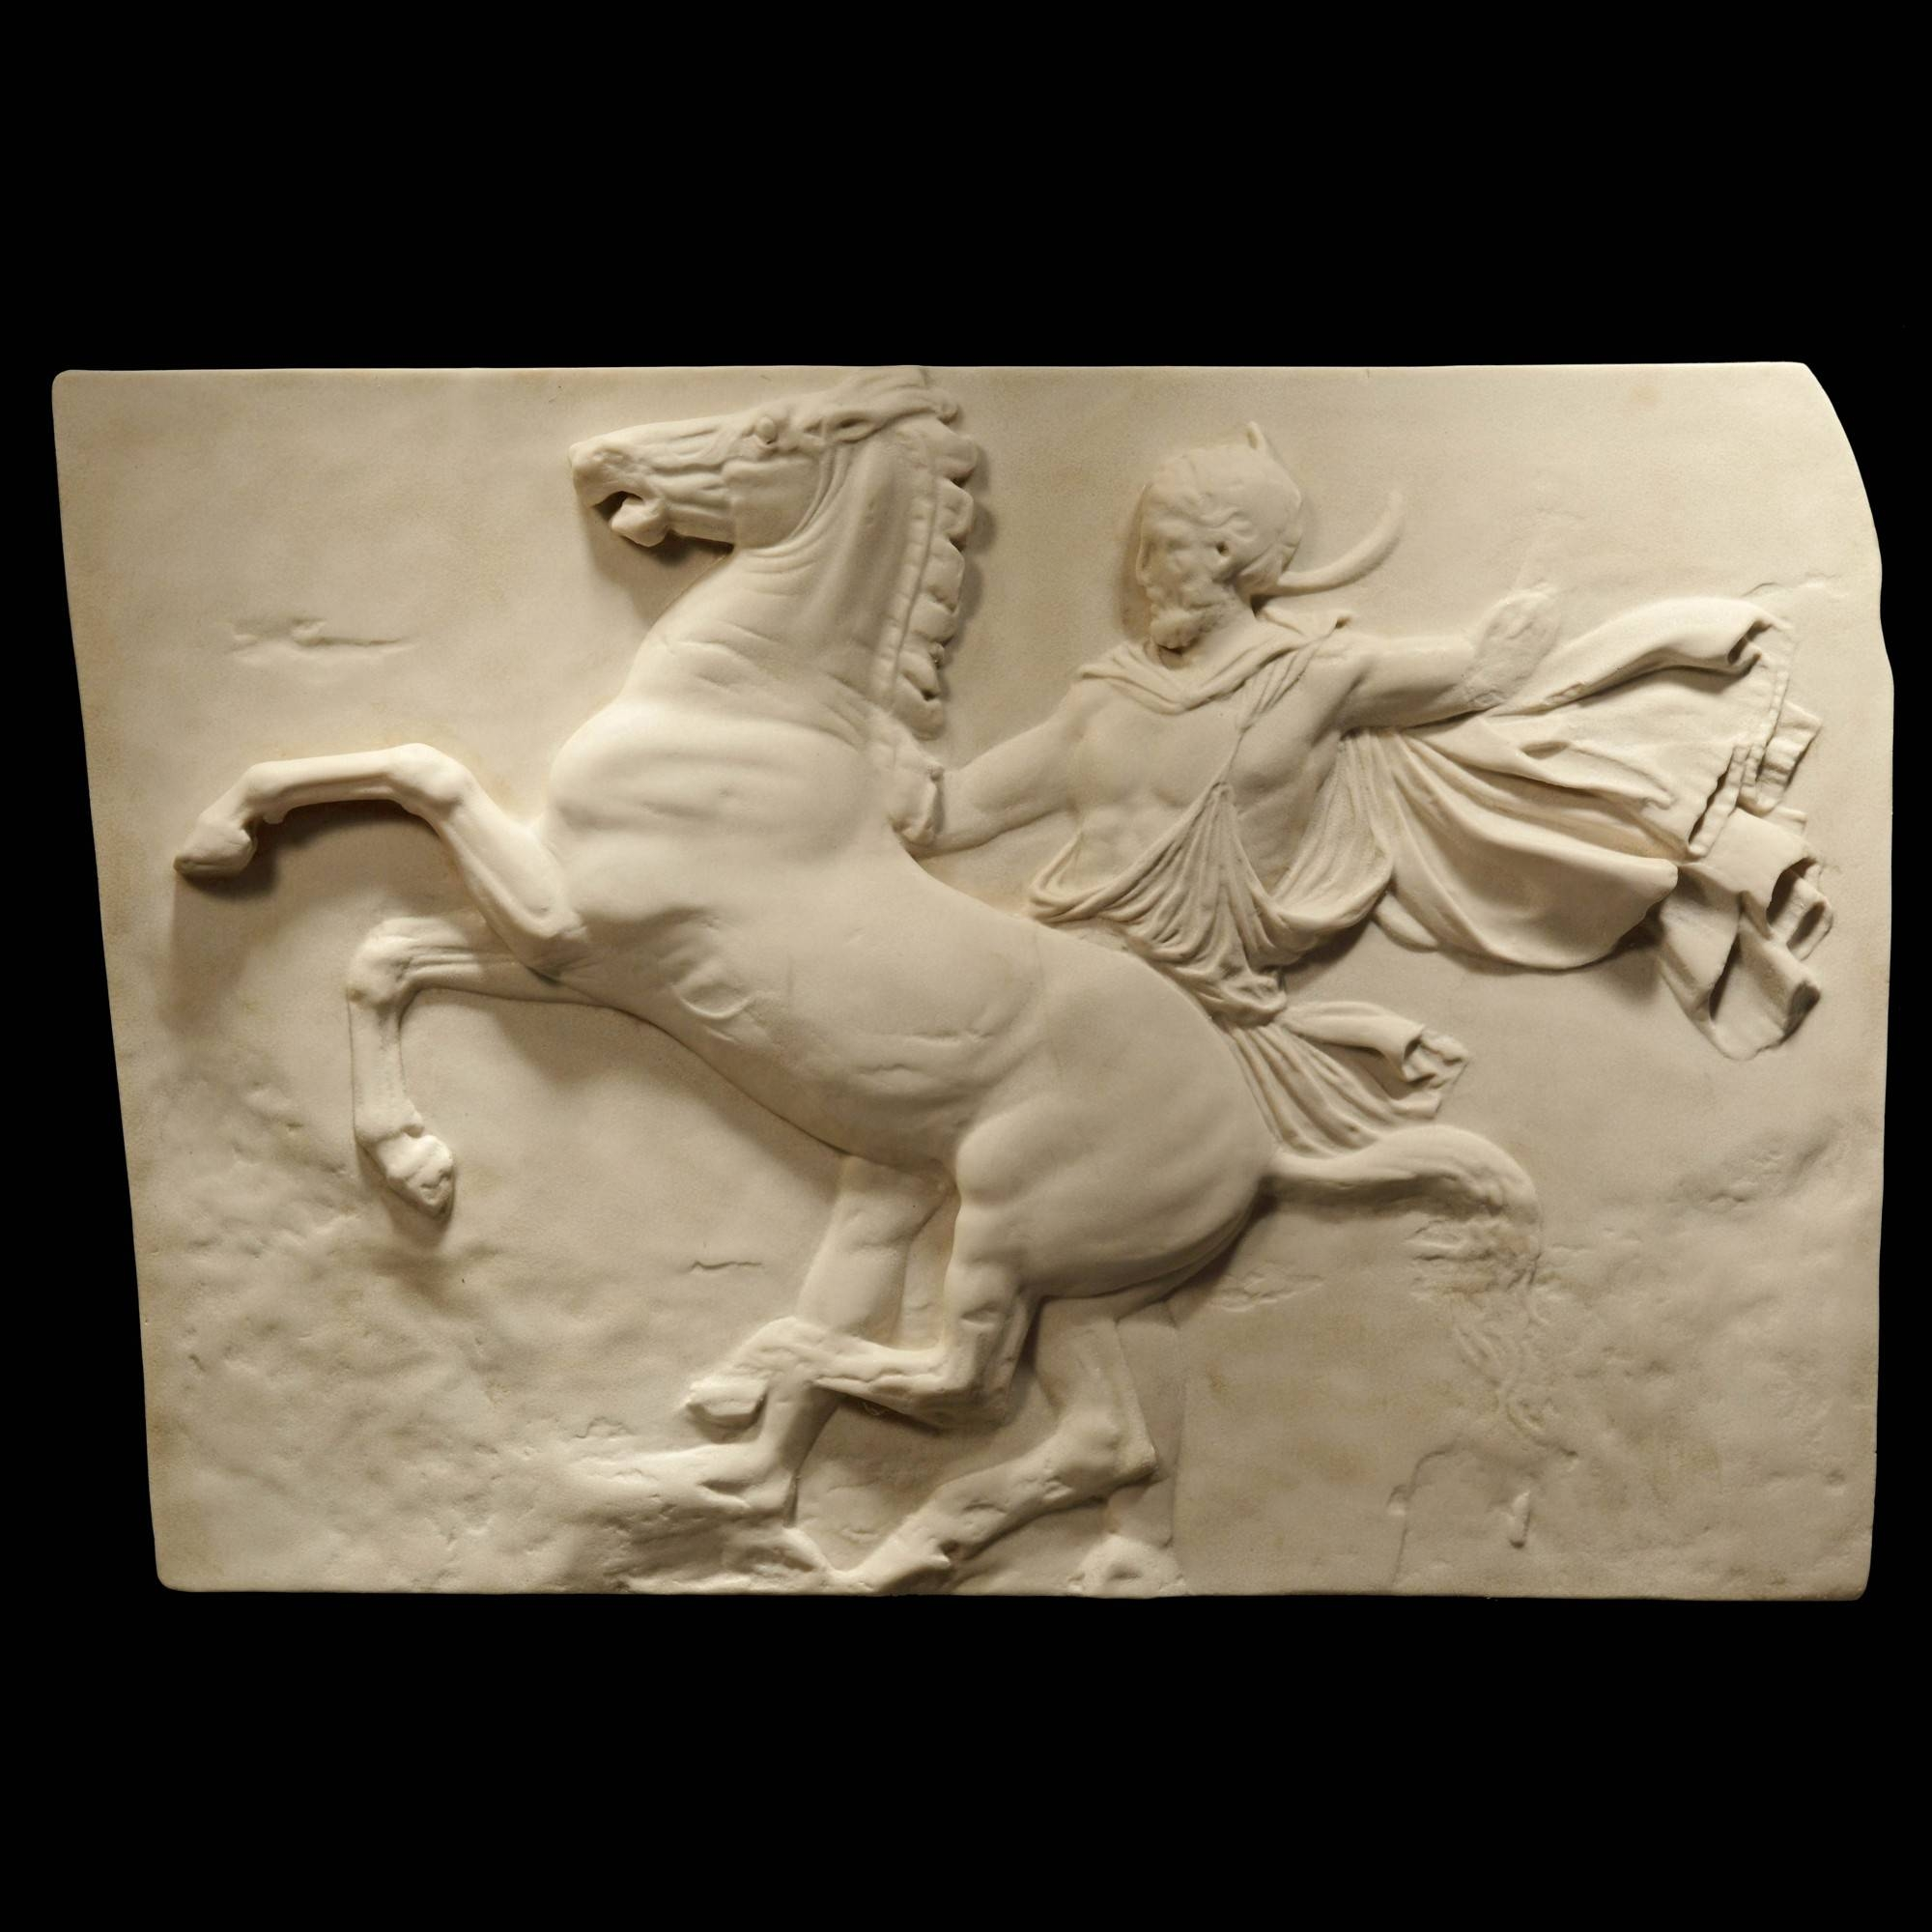 Lone Horseman Parthenon Marbles – Ancient Greek Wall Relief Plaque Within Most Up To Date Greek Wall Art (View 20 of 20)